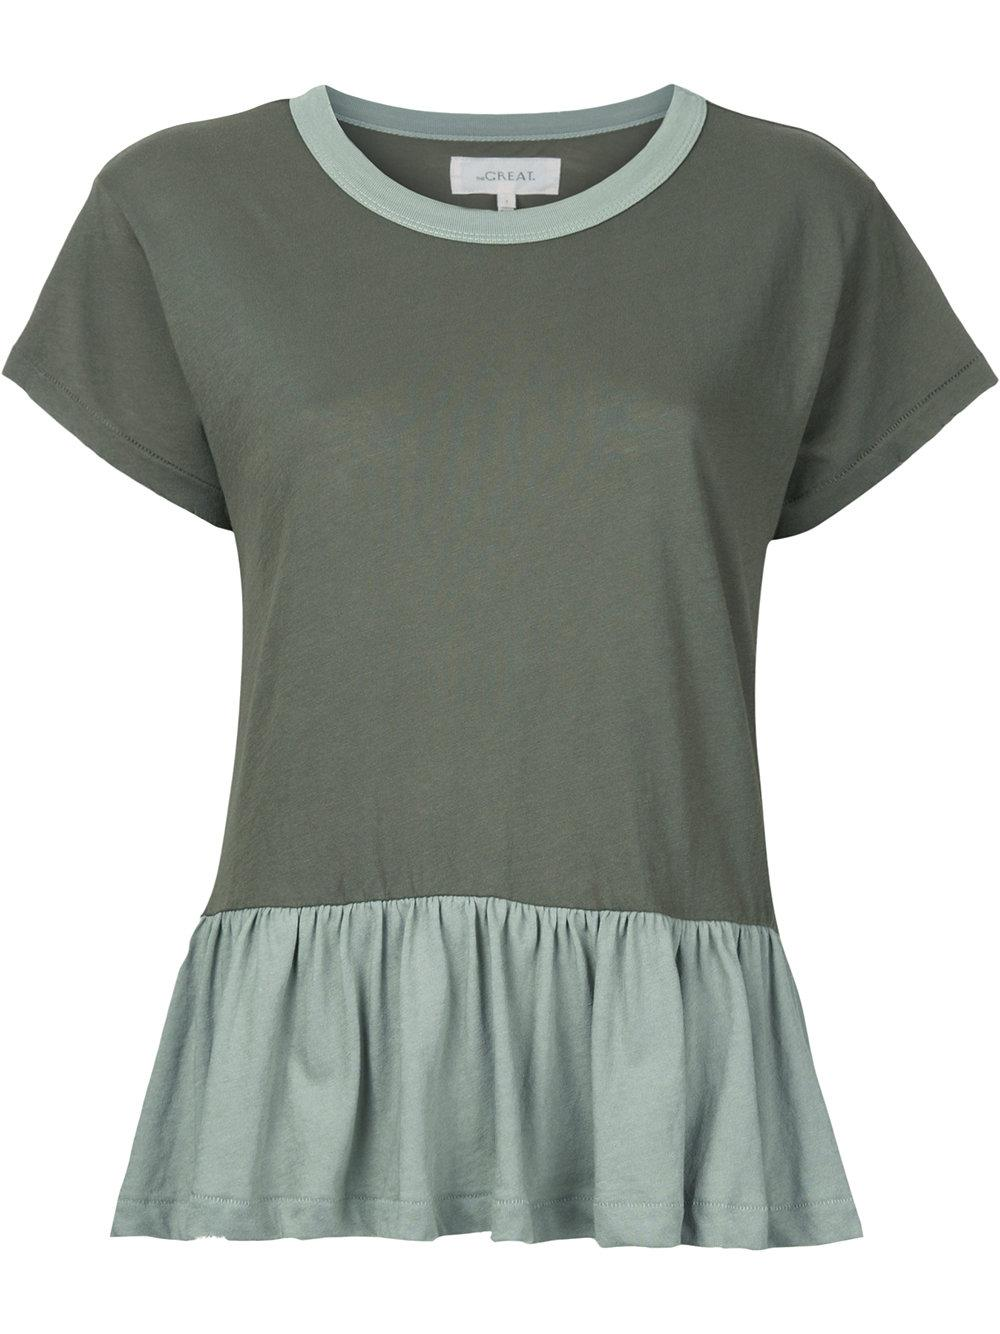 Lyst The Great Maglia T Shirt 39 The Ruffle 39 In Green: the great t shirt